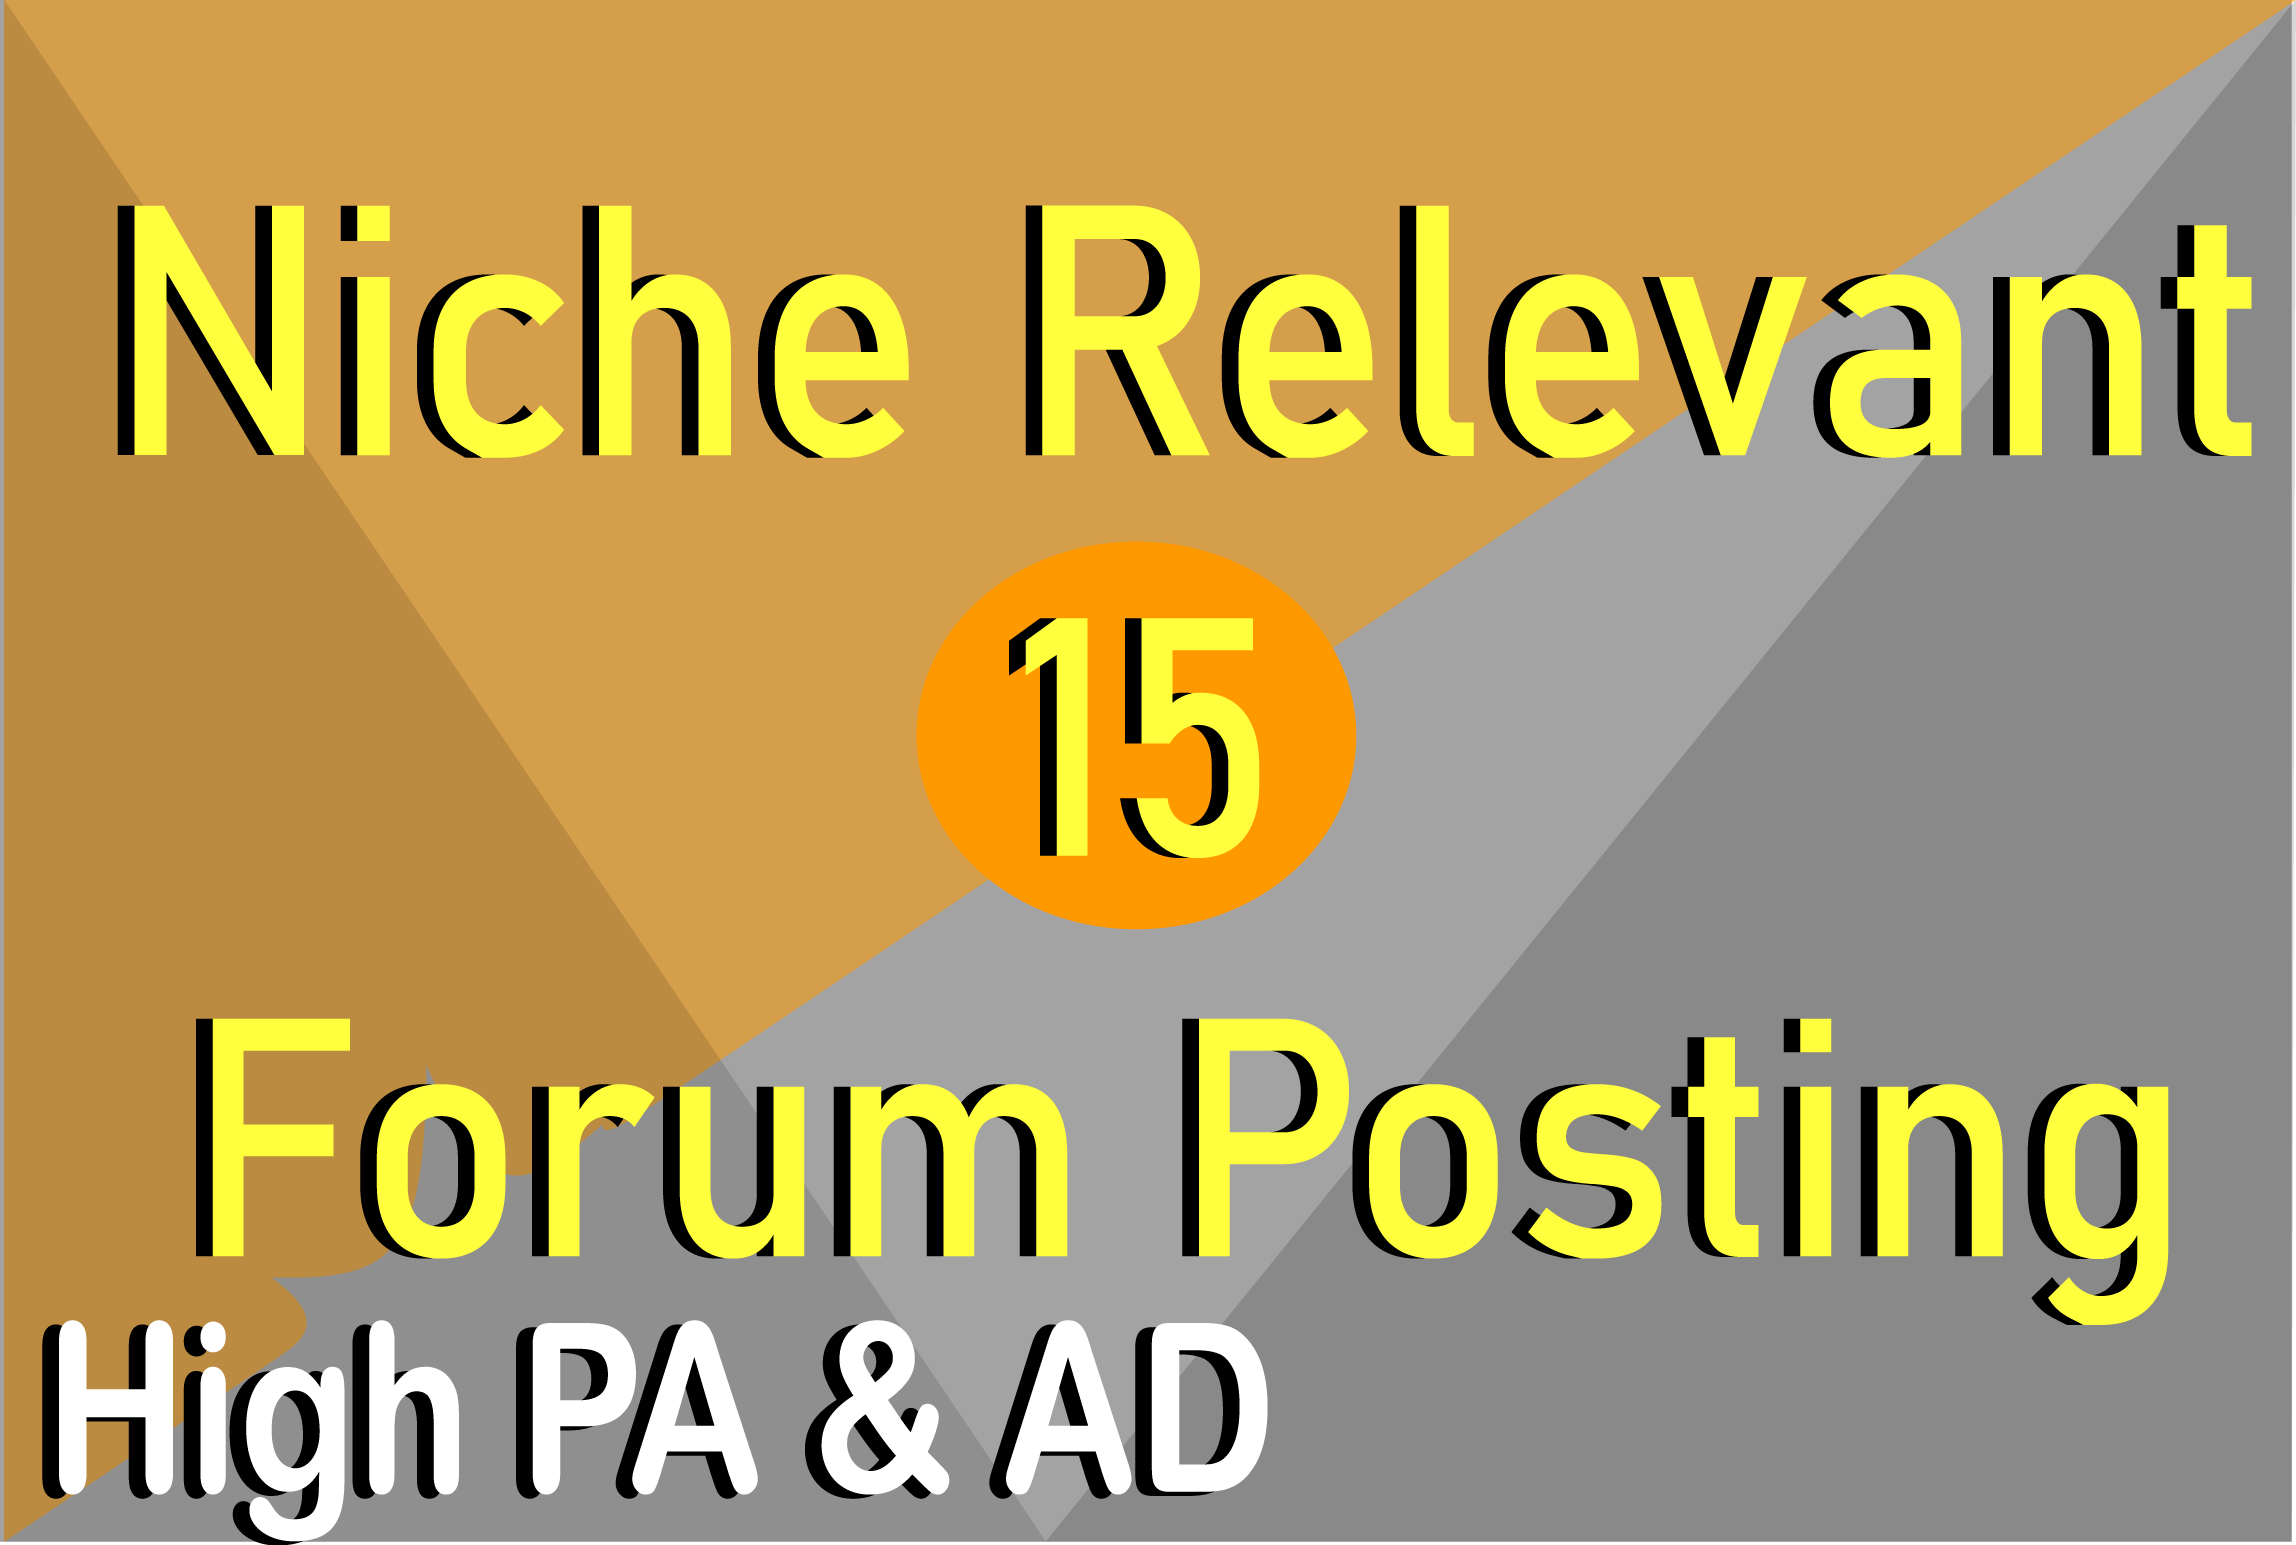 Offer 15 Niche Relevant Forum Posting to Reach Targeted Audience